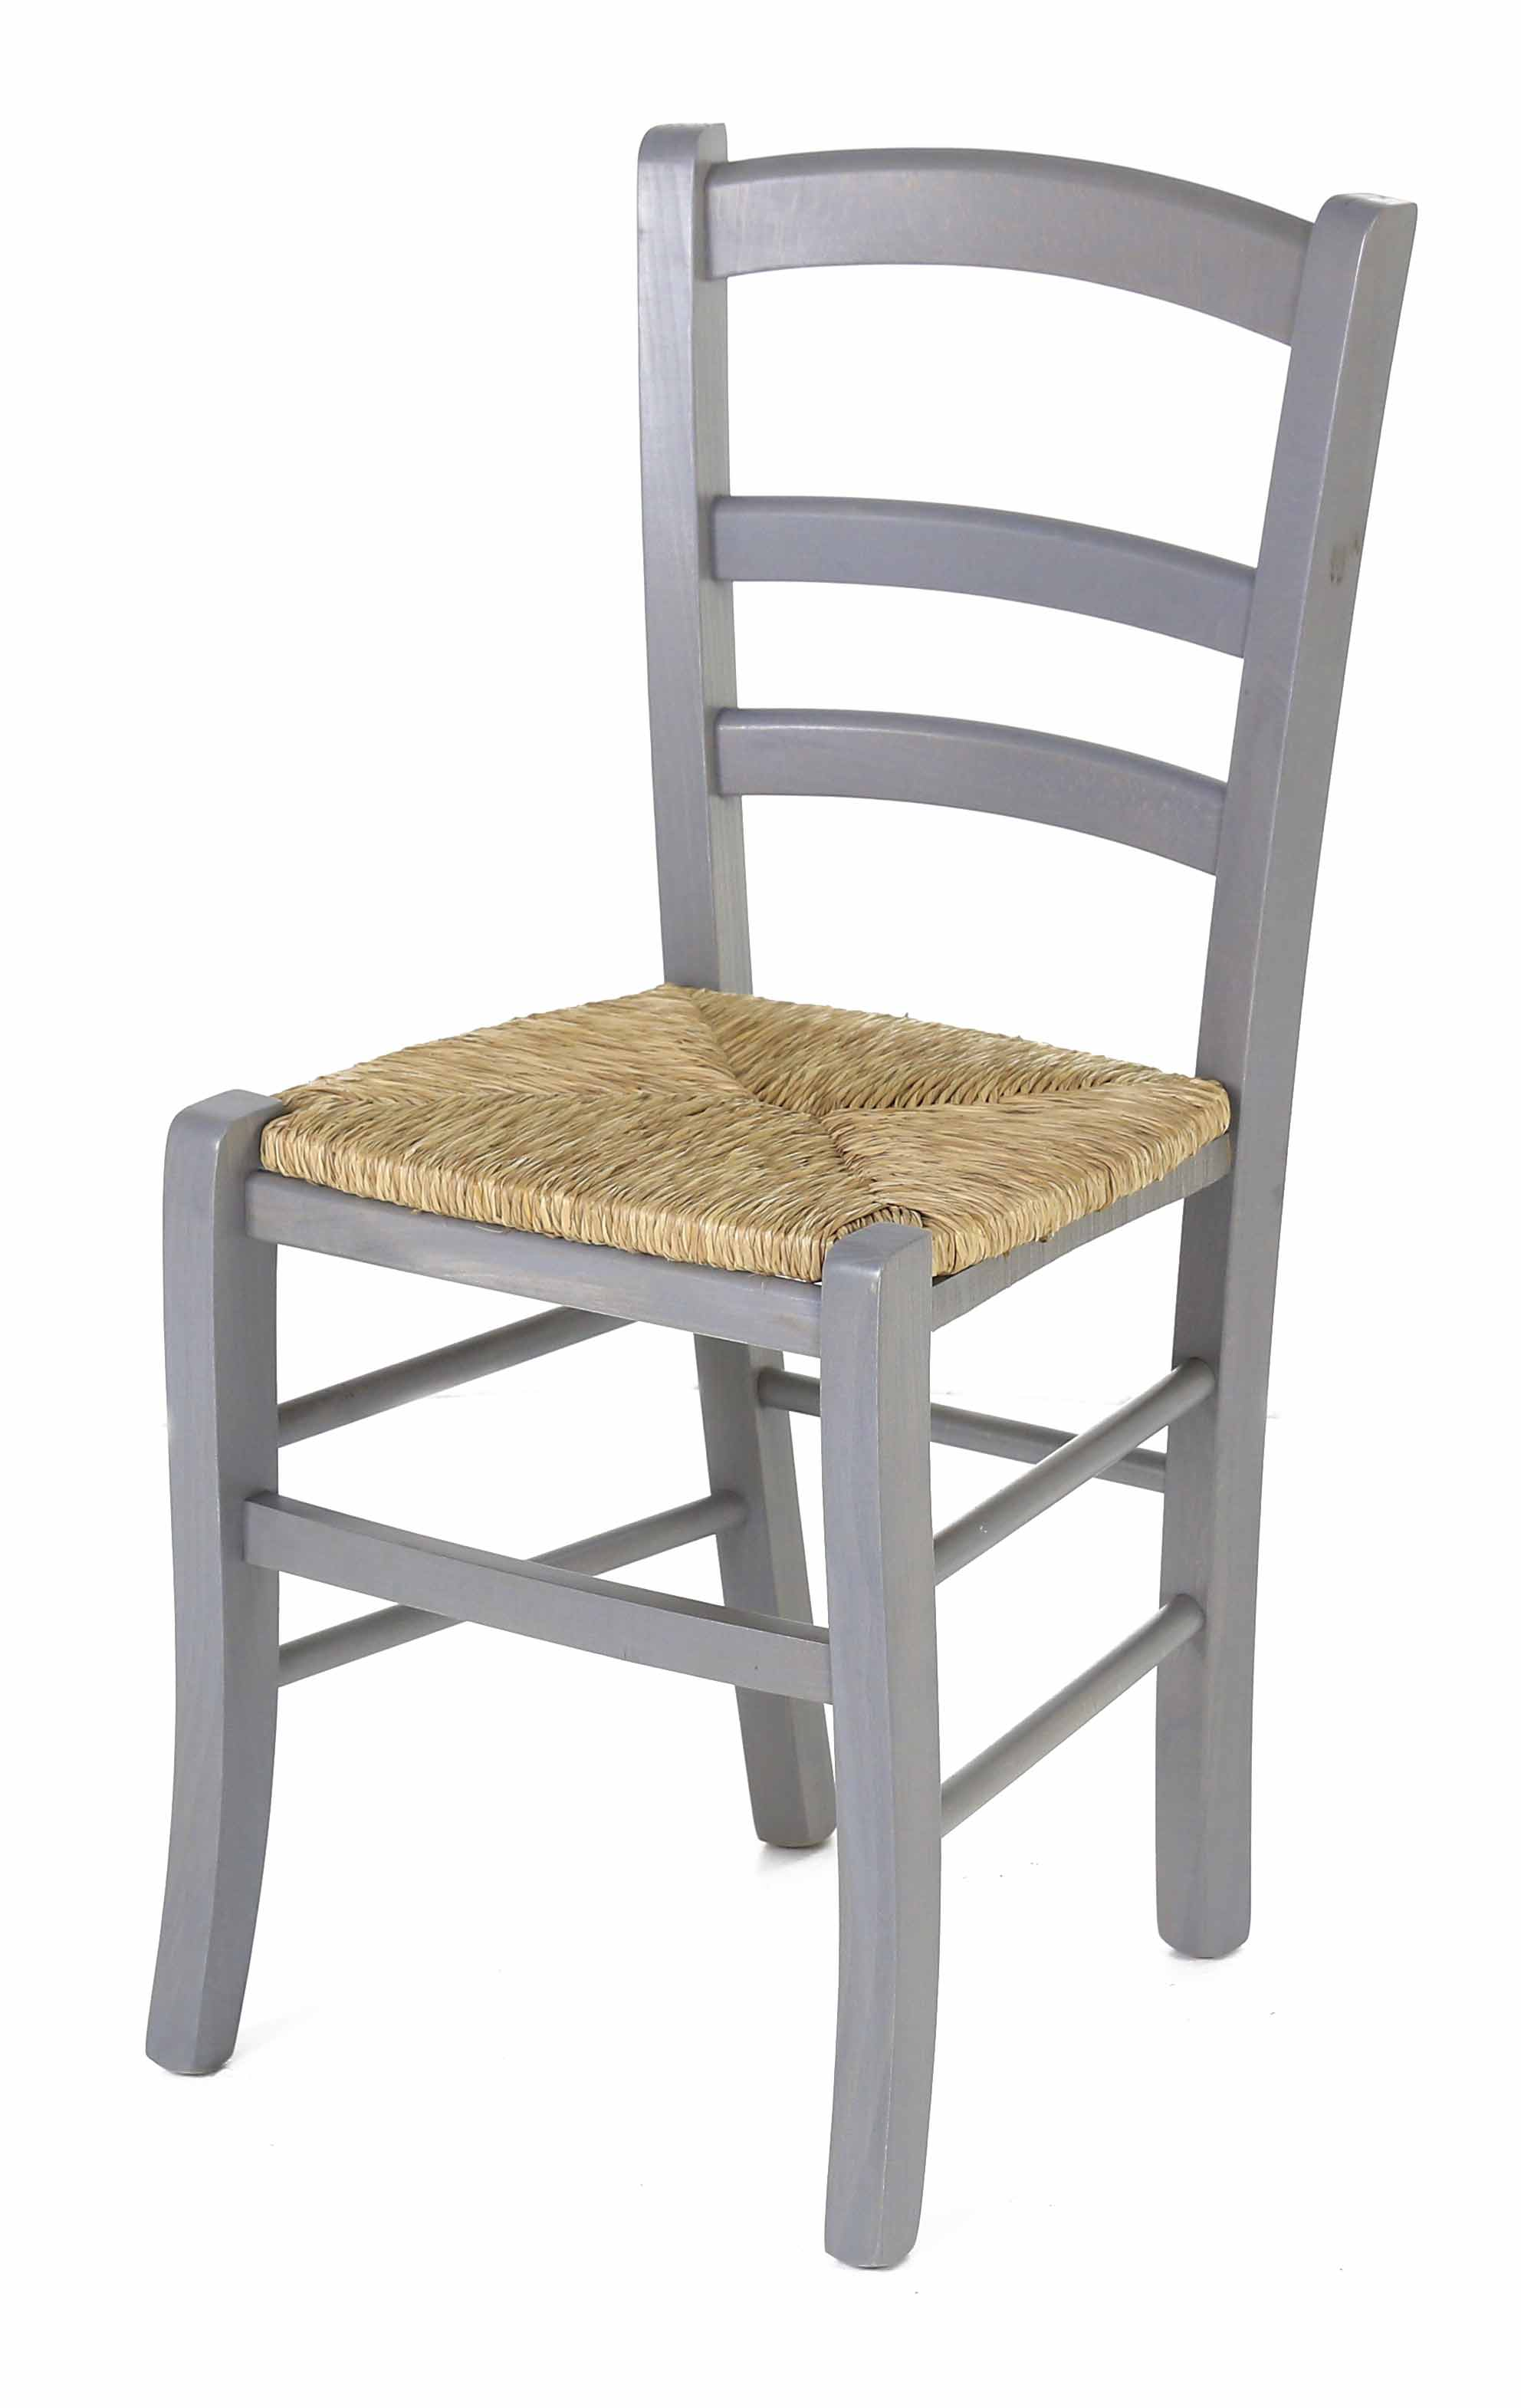 Coin repas chaises chaise h tre massif grise assise for Chaise sejour grise